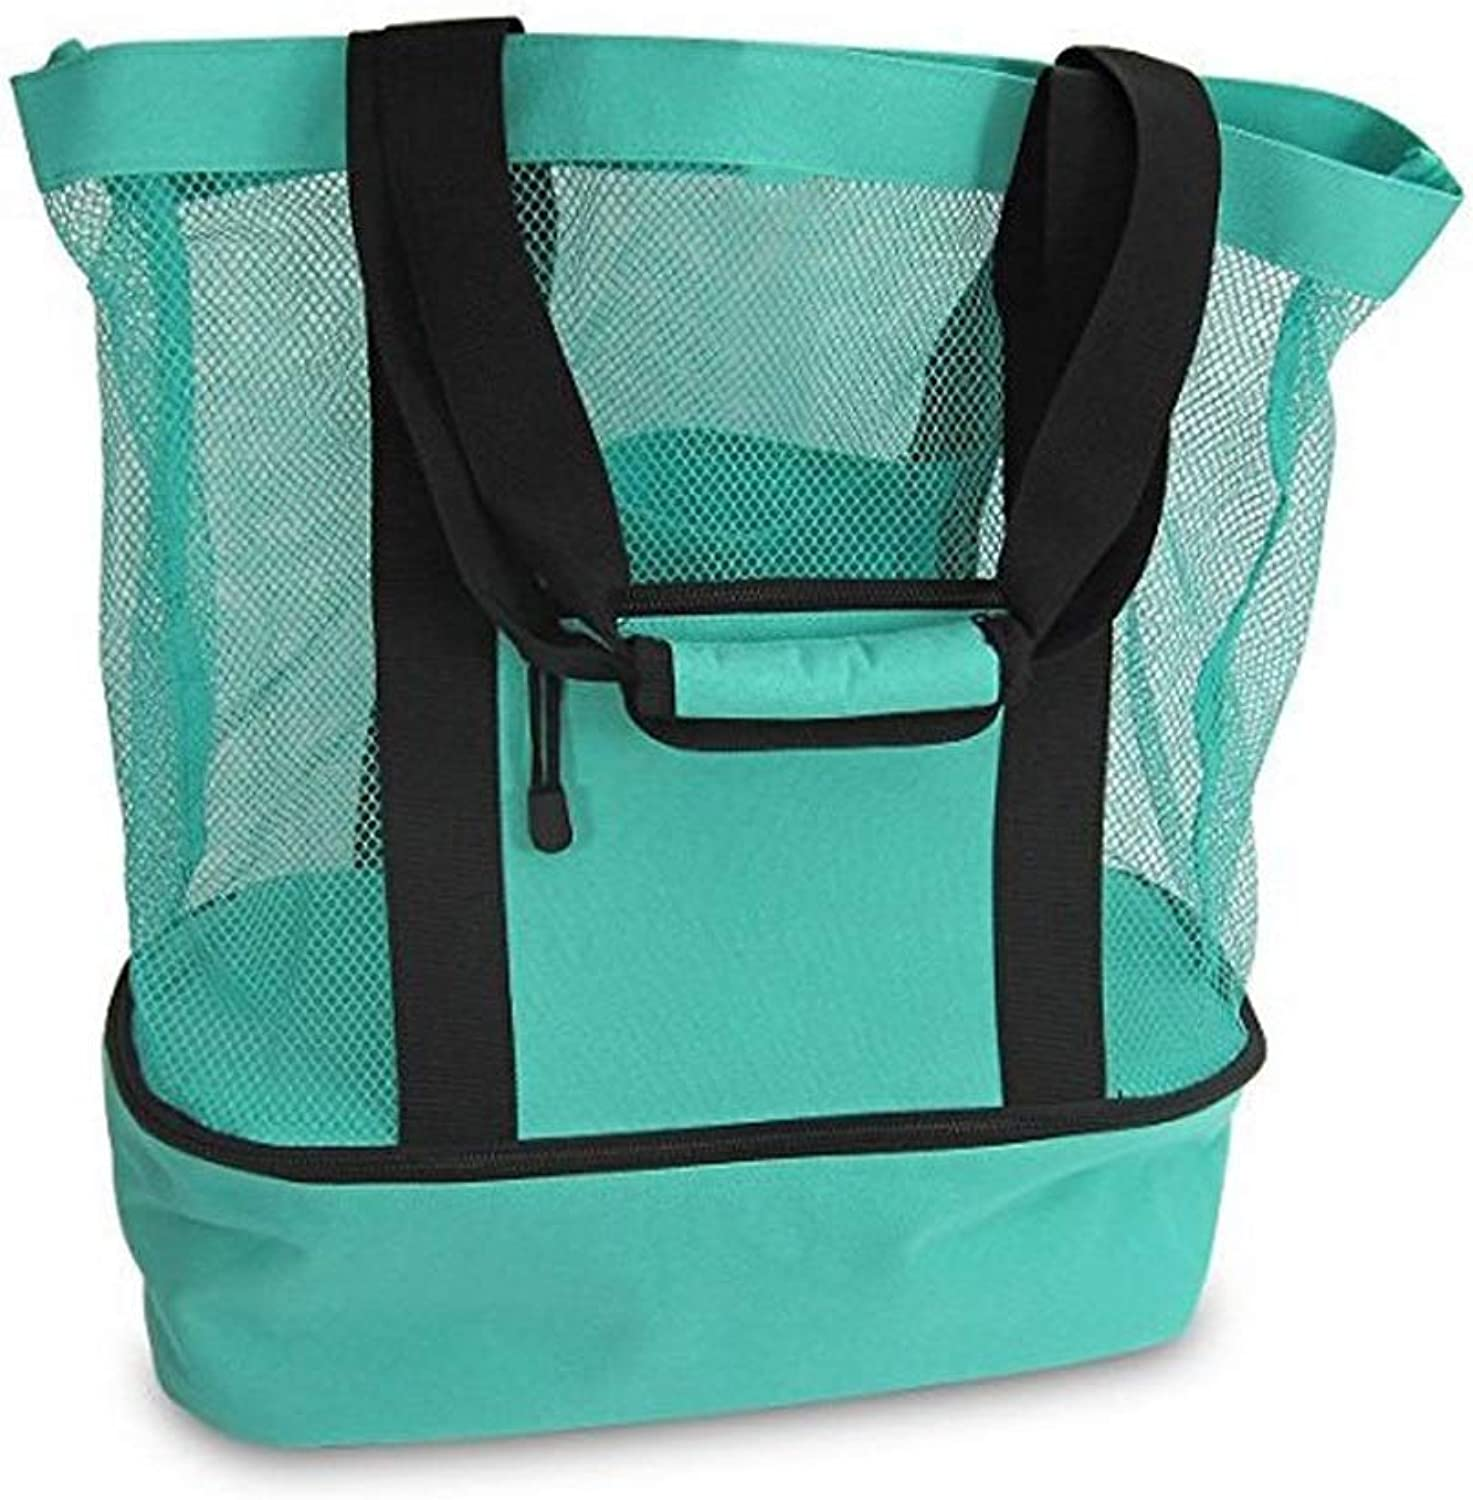 31L Large Portable Cooler Bag, Adult Insulated Lunch Bag Tote for Men and Women Kids, Soft Waterproof Cool Picnic Bag Box for Picnic Camping, Work, 50x41x15cm, Green